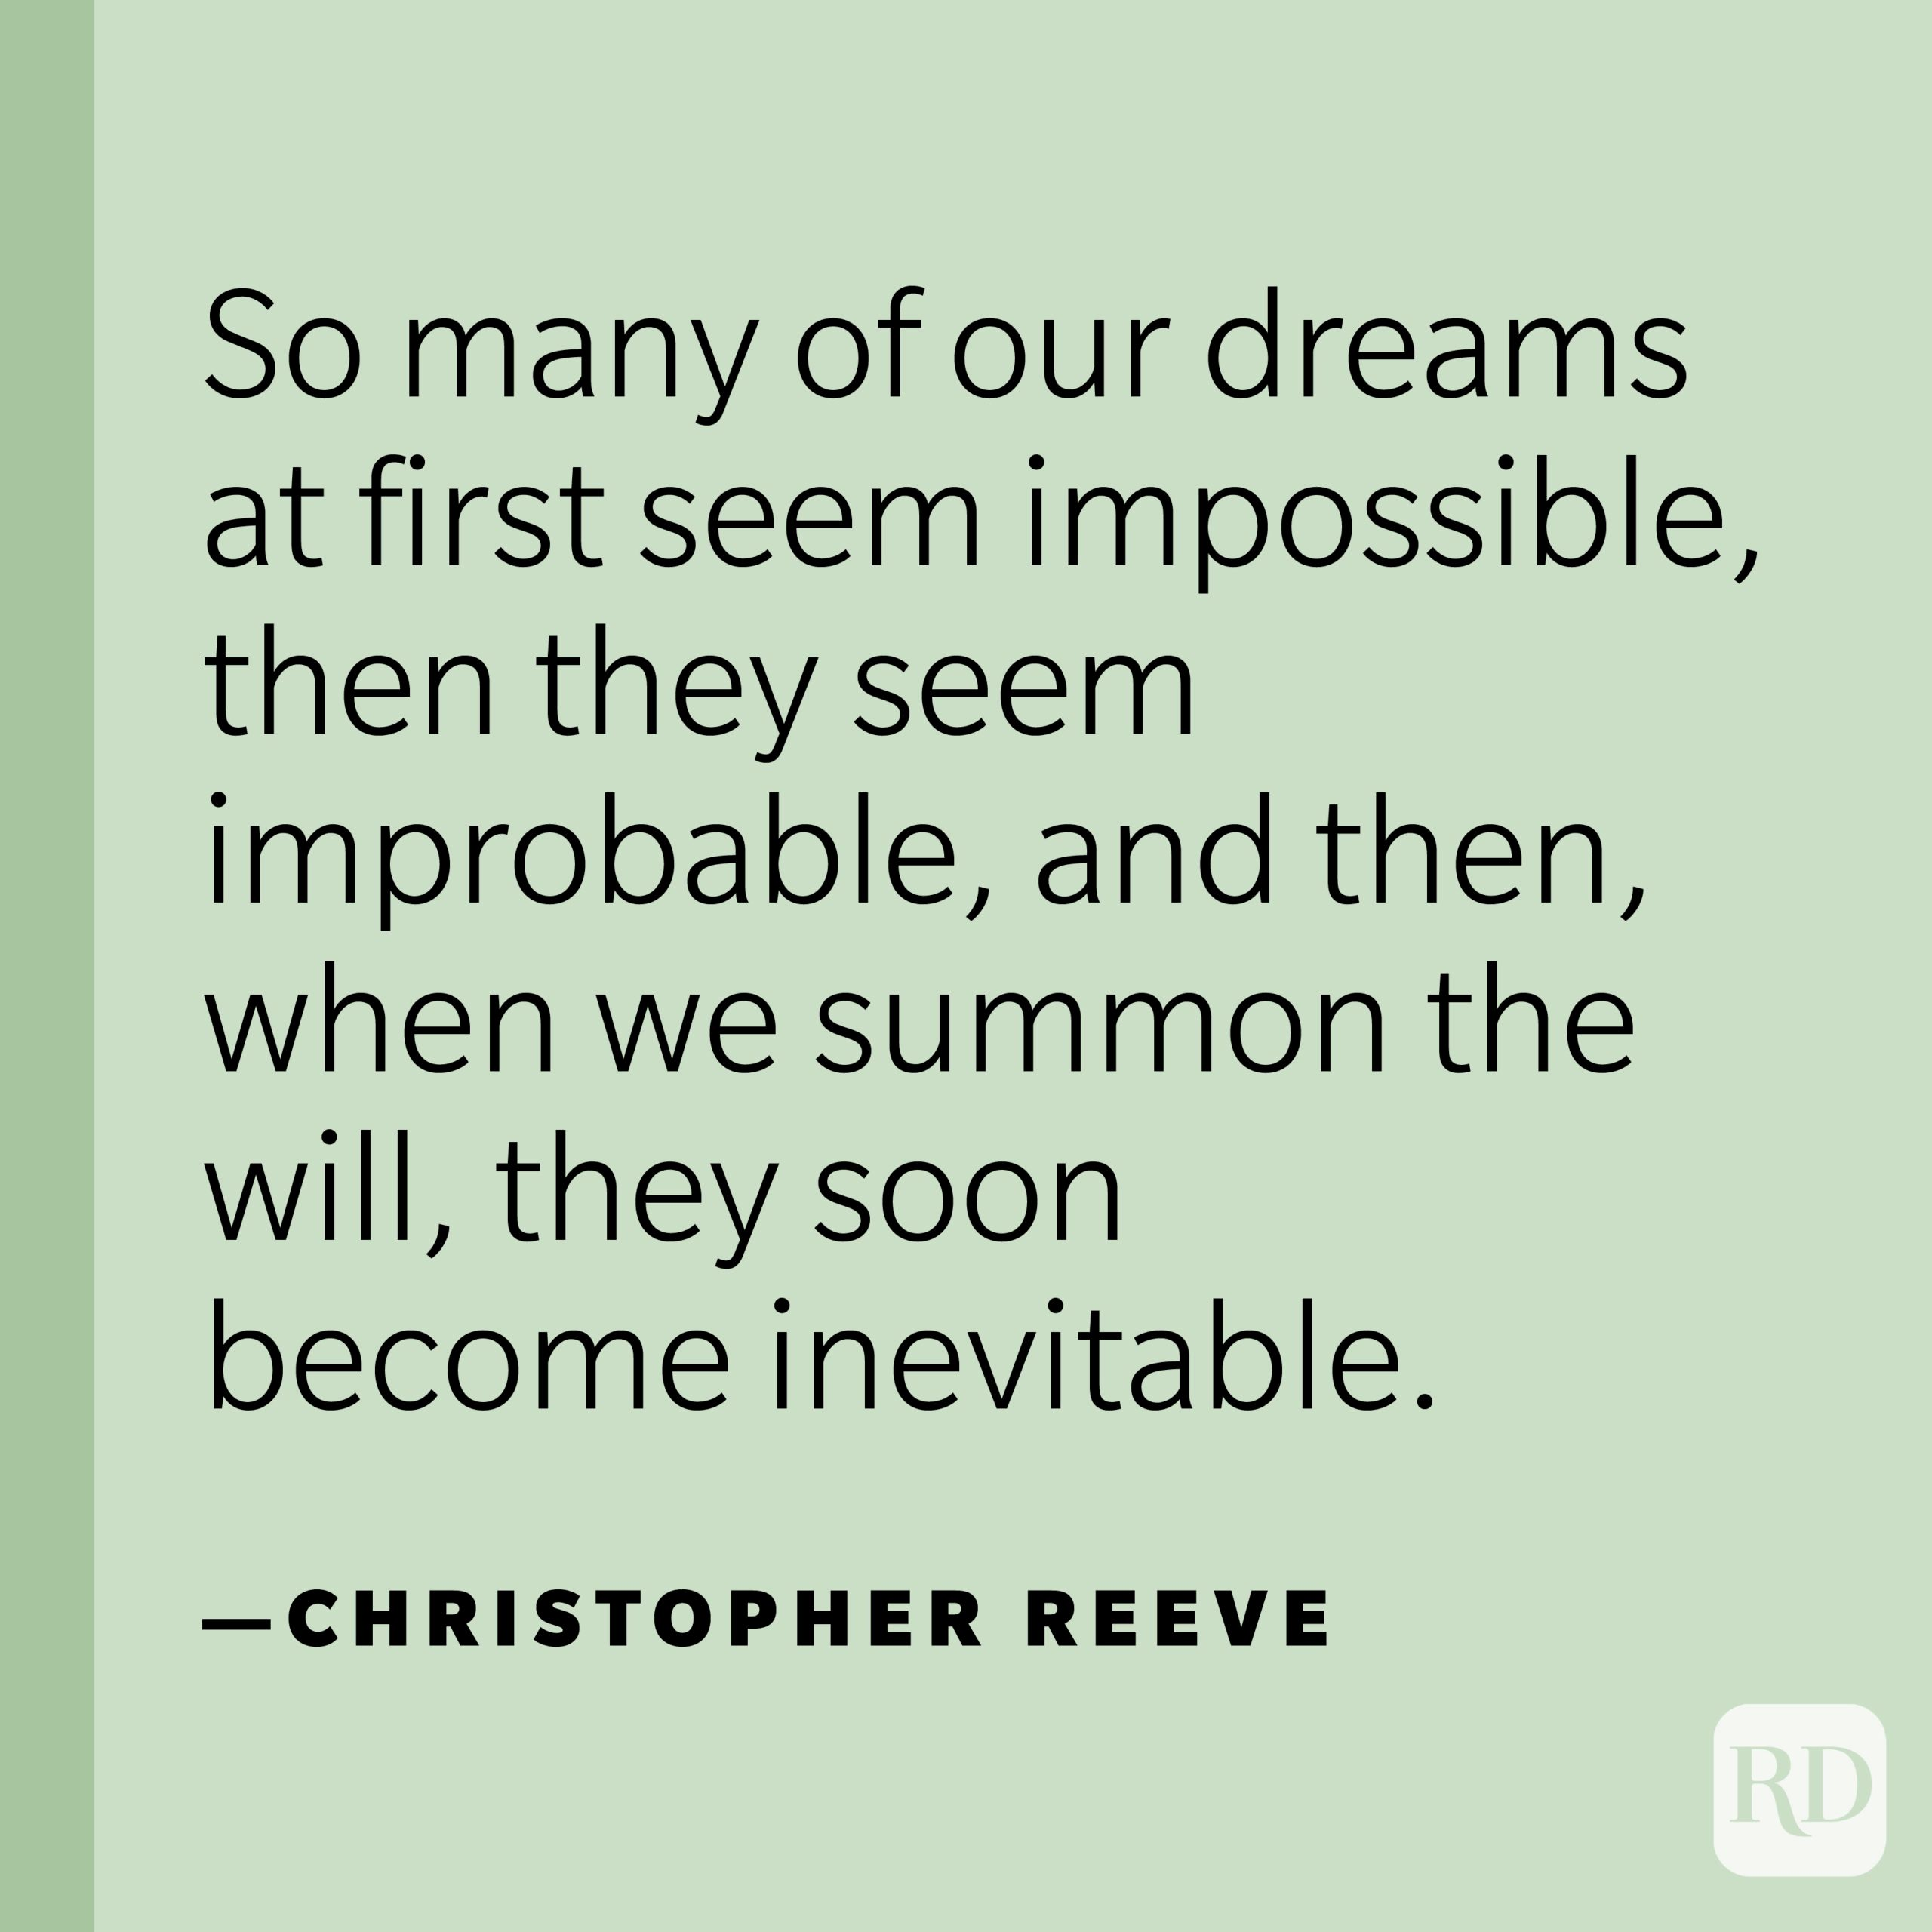 """""""So many of our dreams at first seem impossible, then they seem improbable, and then, when we summon the will, they soon become inevitable.""""—Christopher Reeve."""